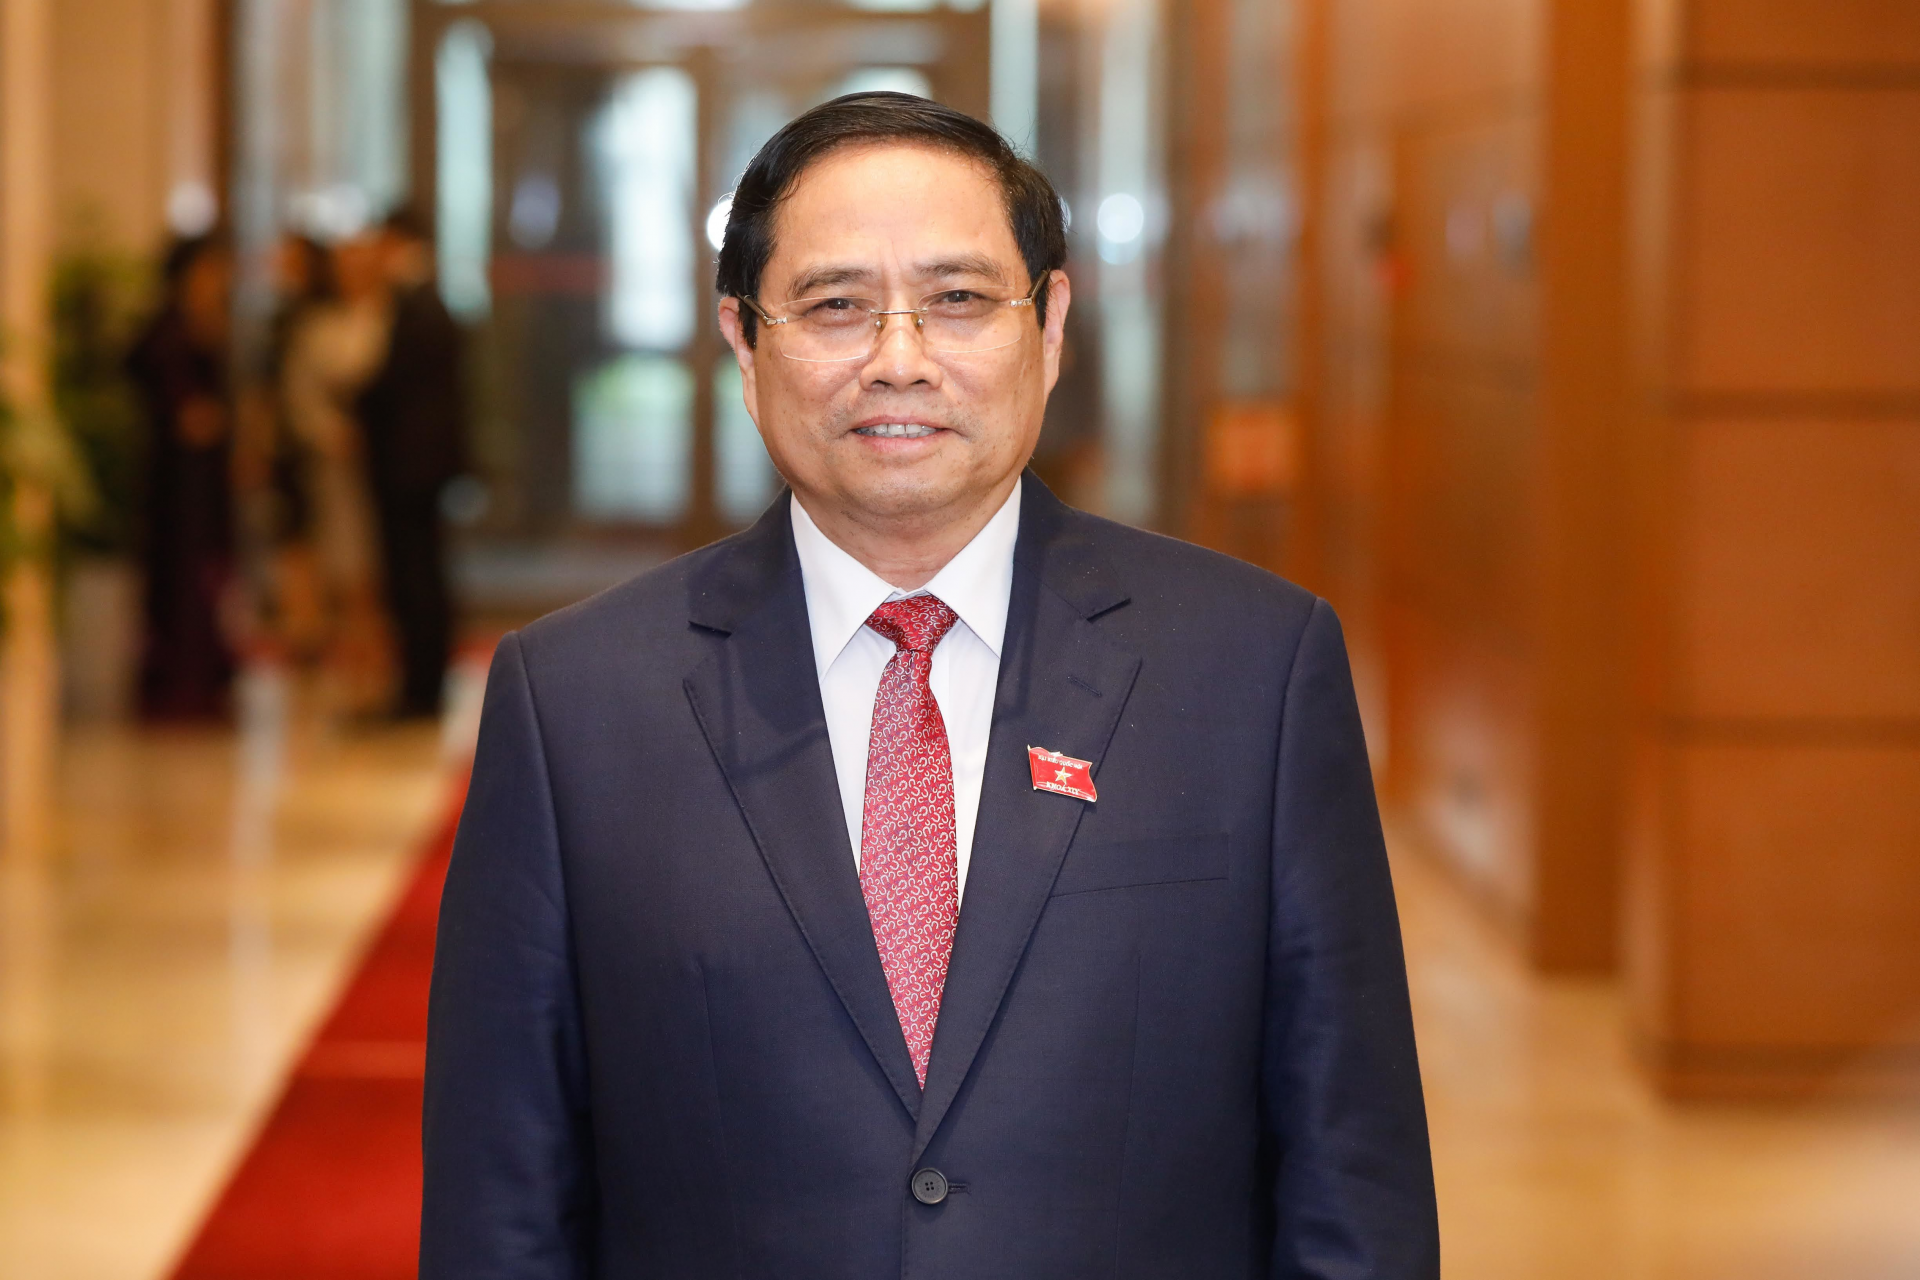 Pham Minh Chinh elected as Prime Minister of Vietnam